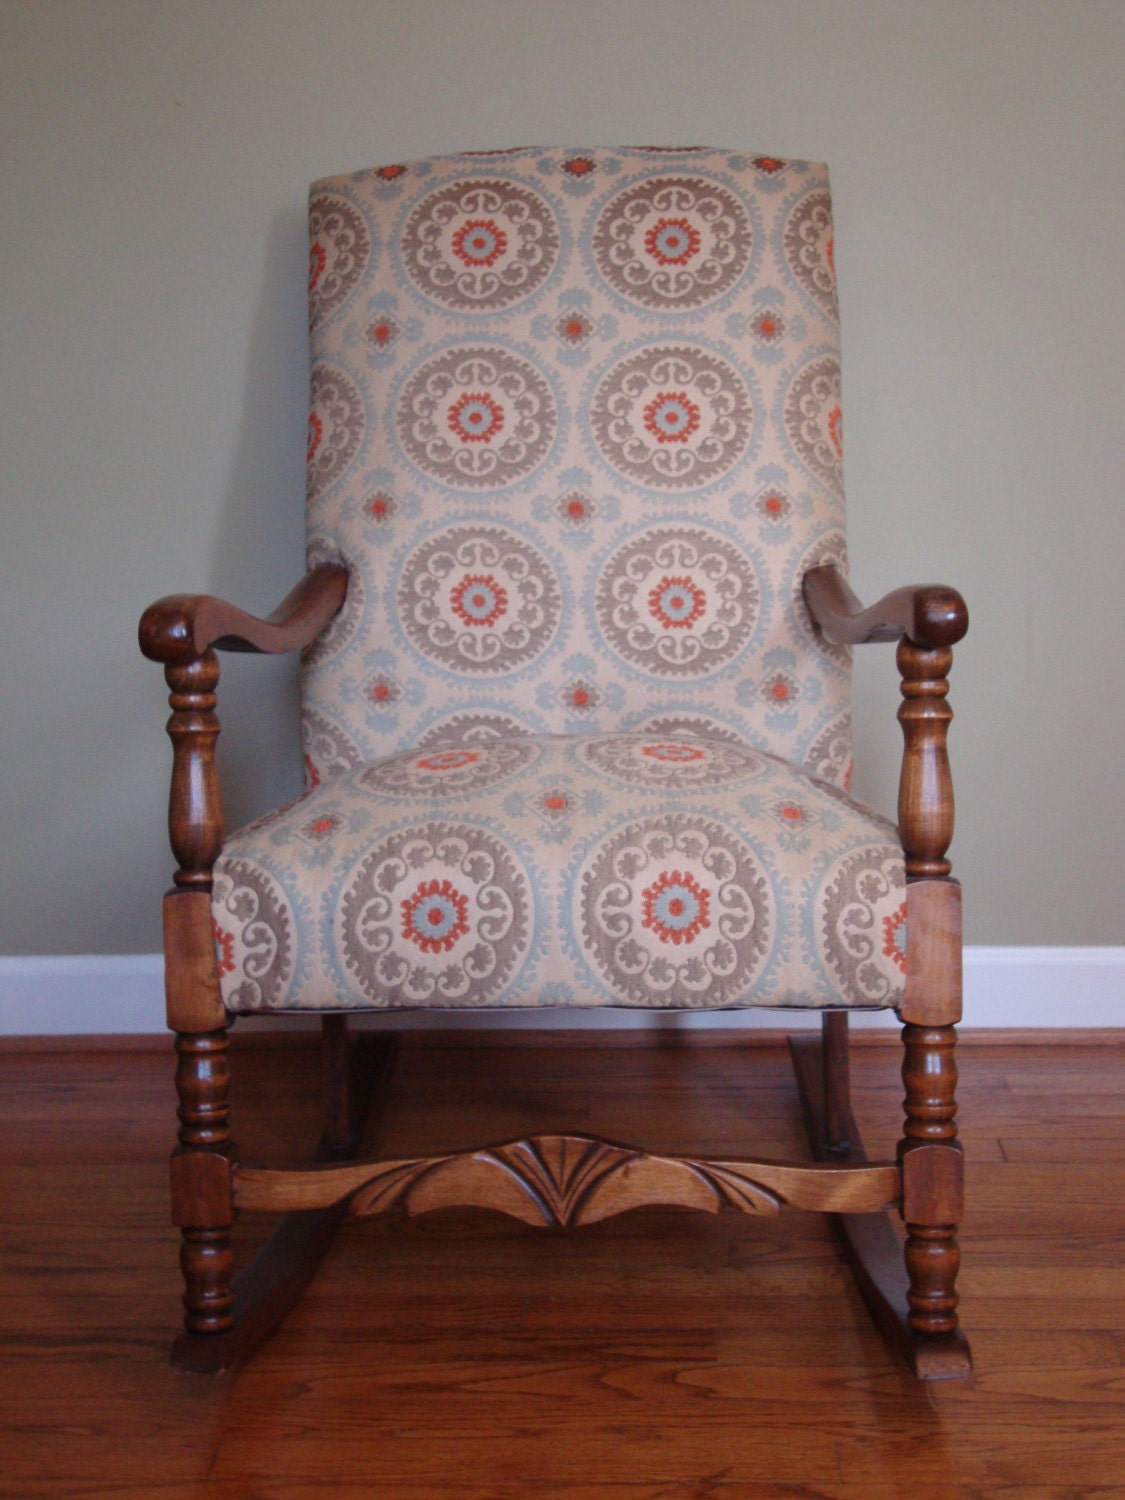 Upholstered Rocking Chair in Suzani Fabric